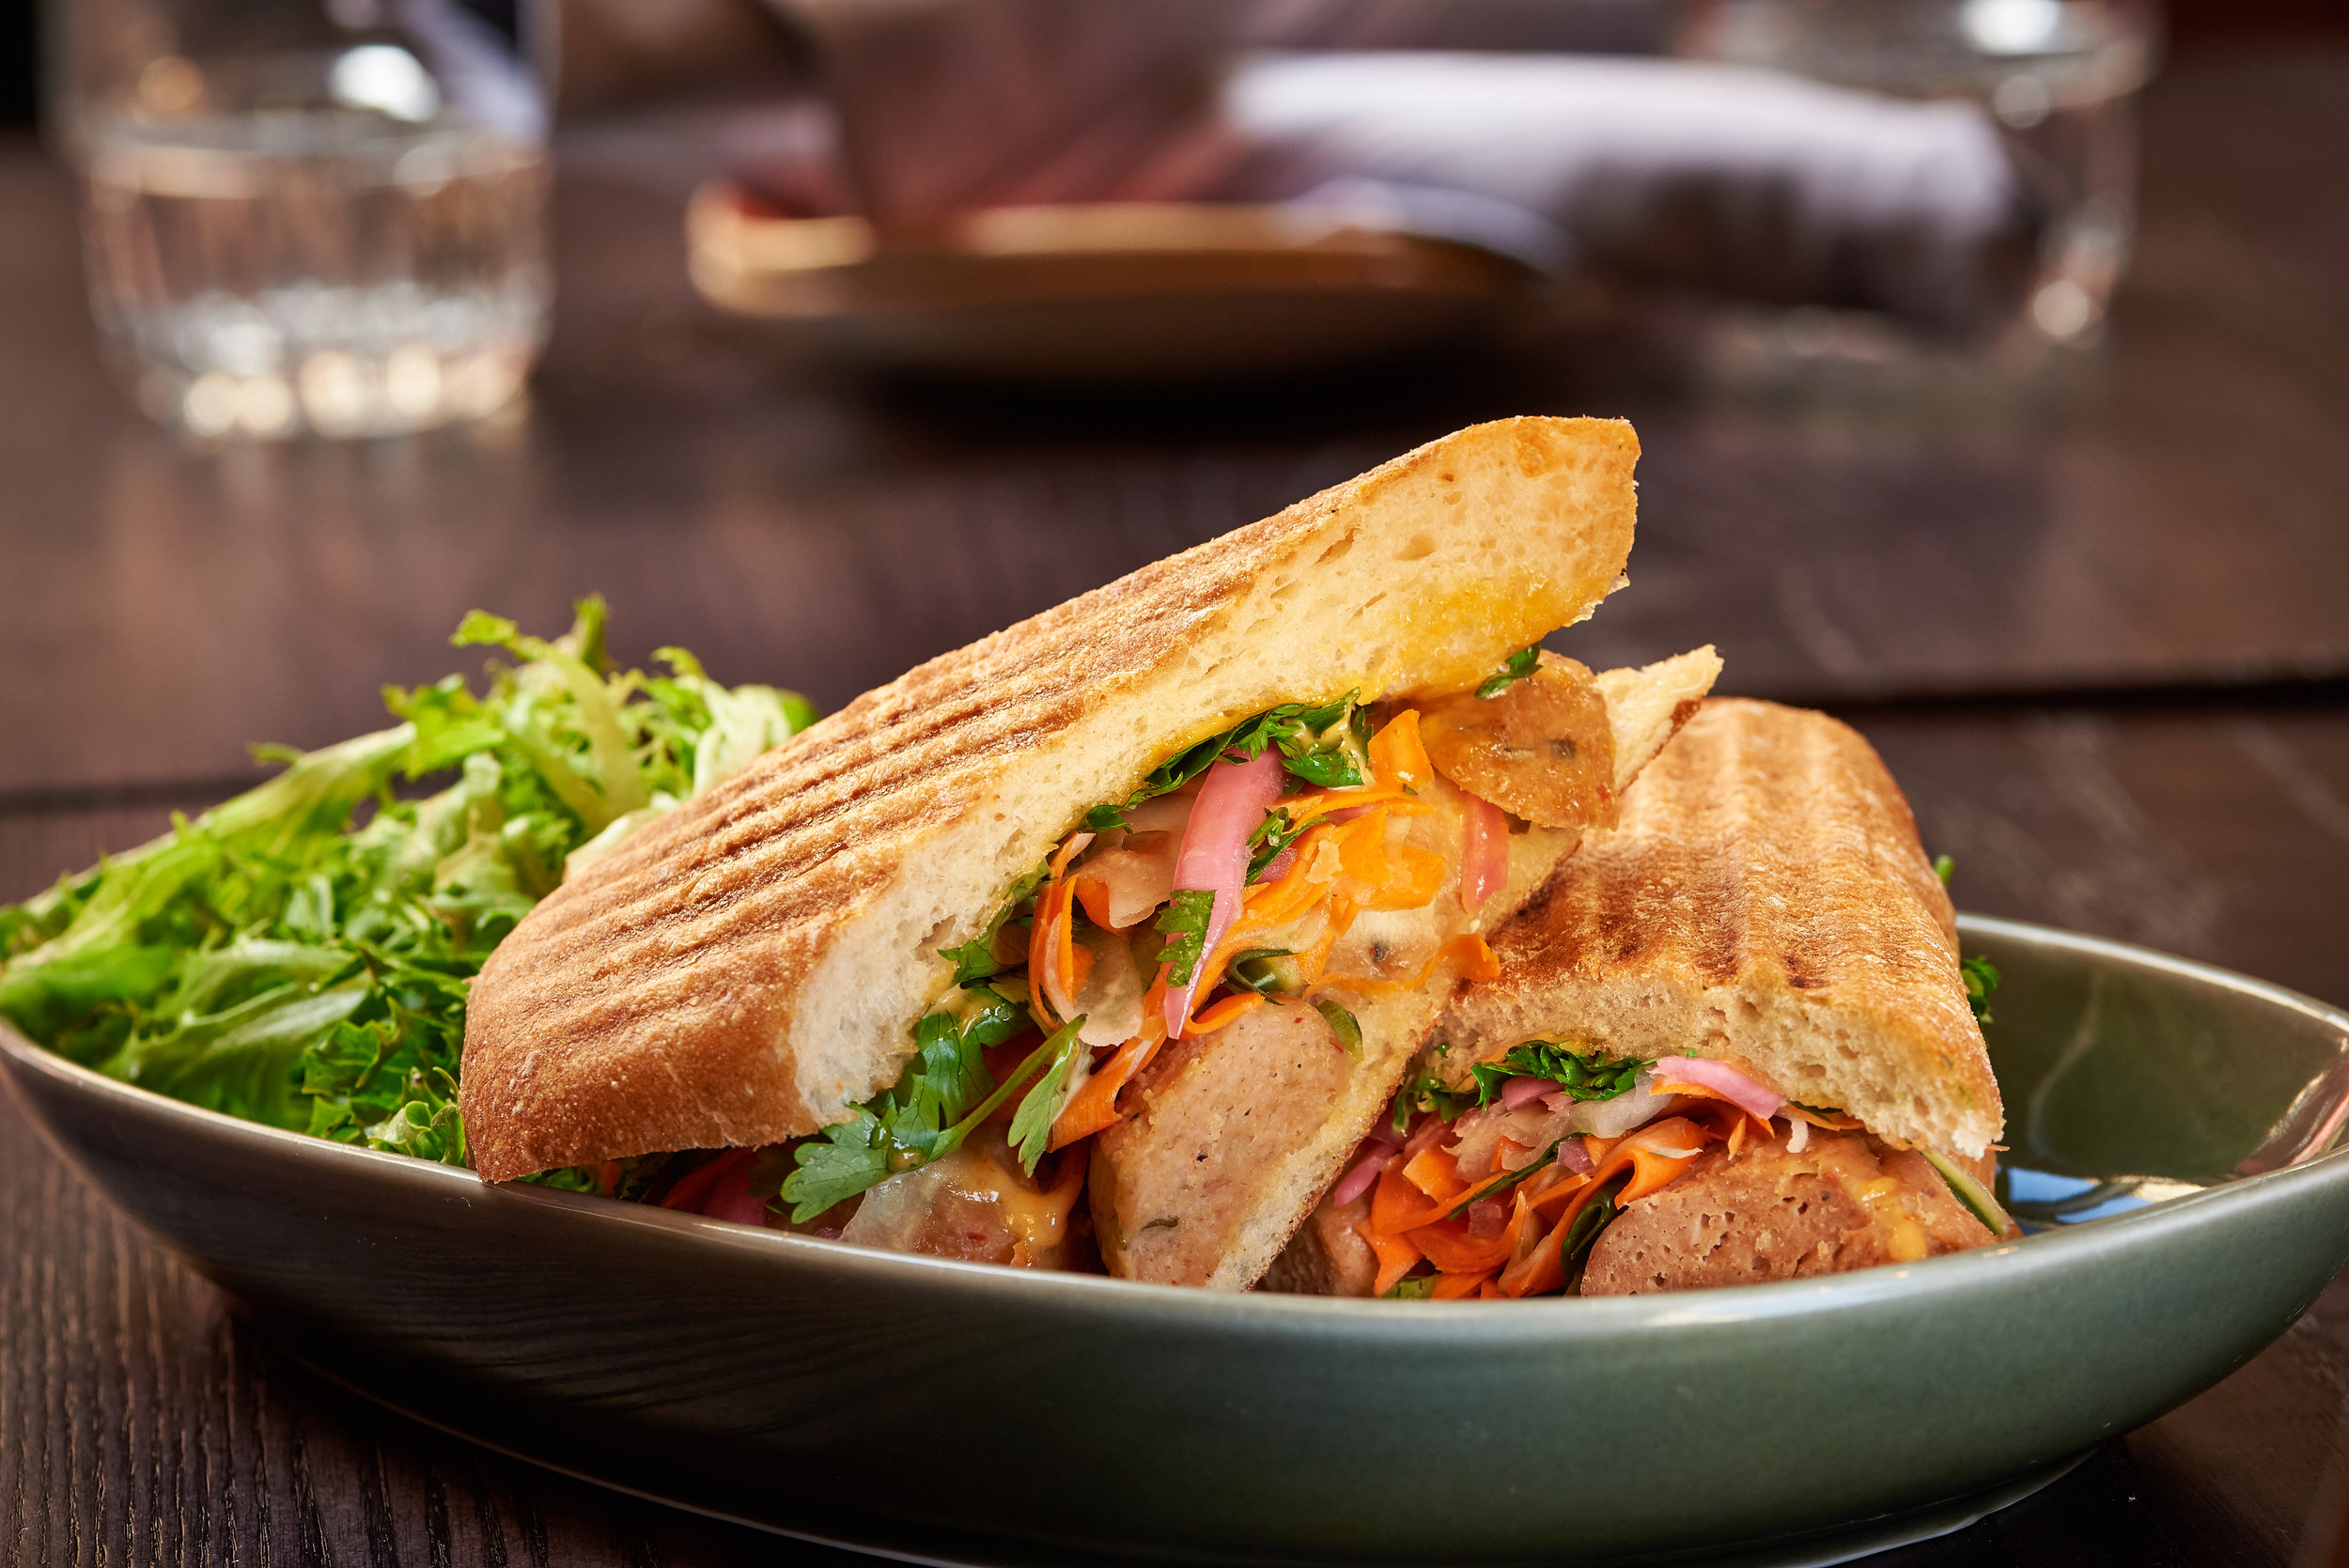 Professional food photo of a meatball panini sandwich made with cilantro, pickle onions and cheese with salad on the side. Commercial photography